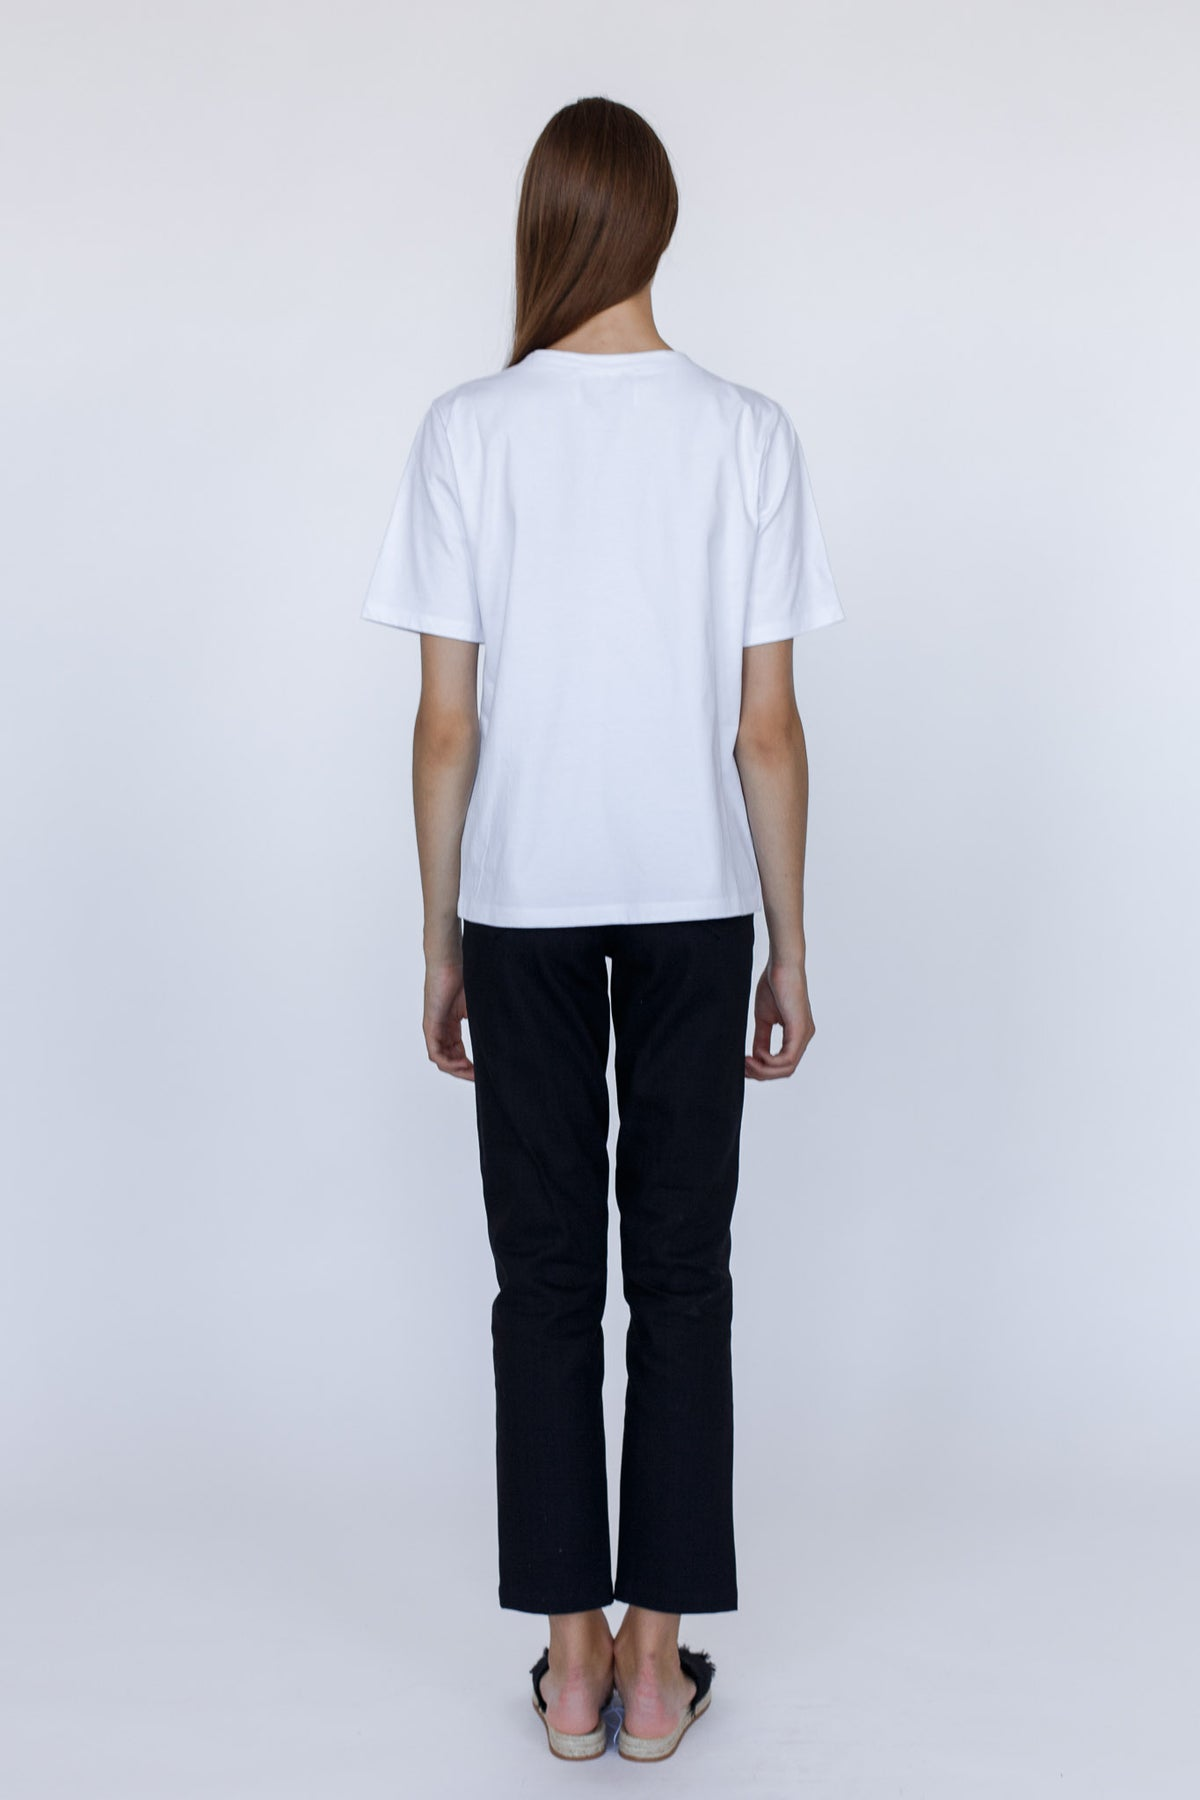 KIND | Pure white cotton quote t-shirt